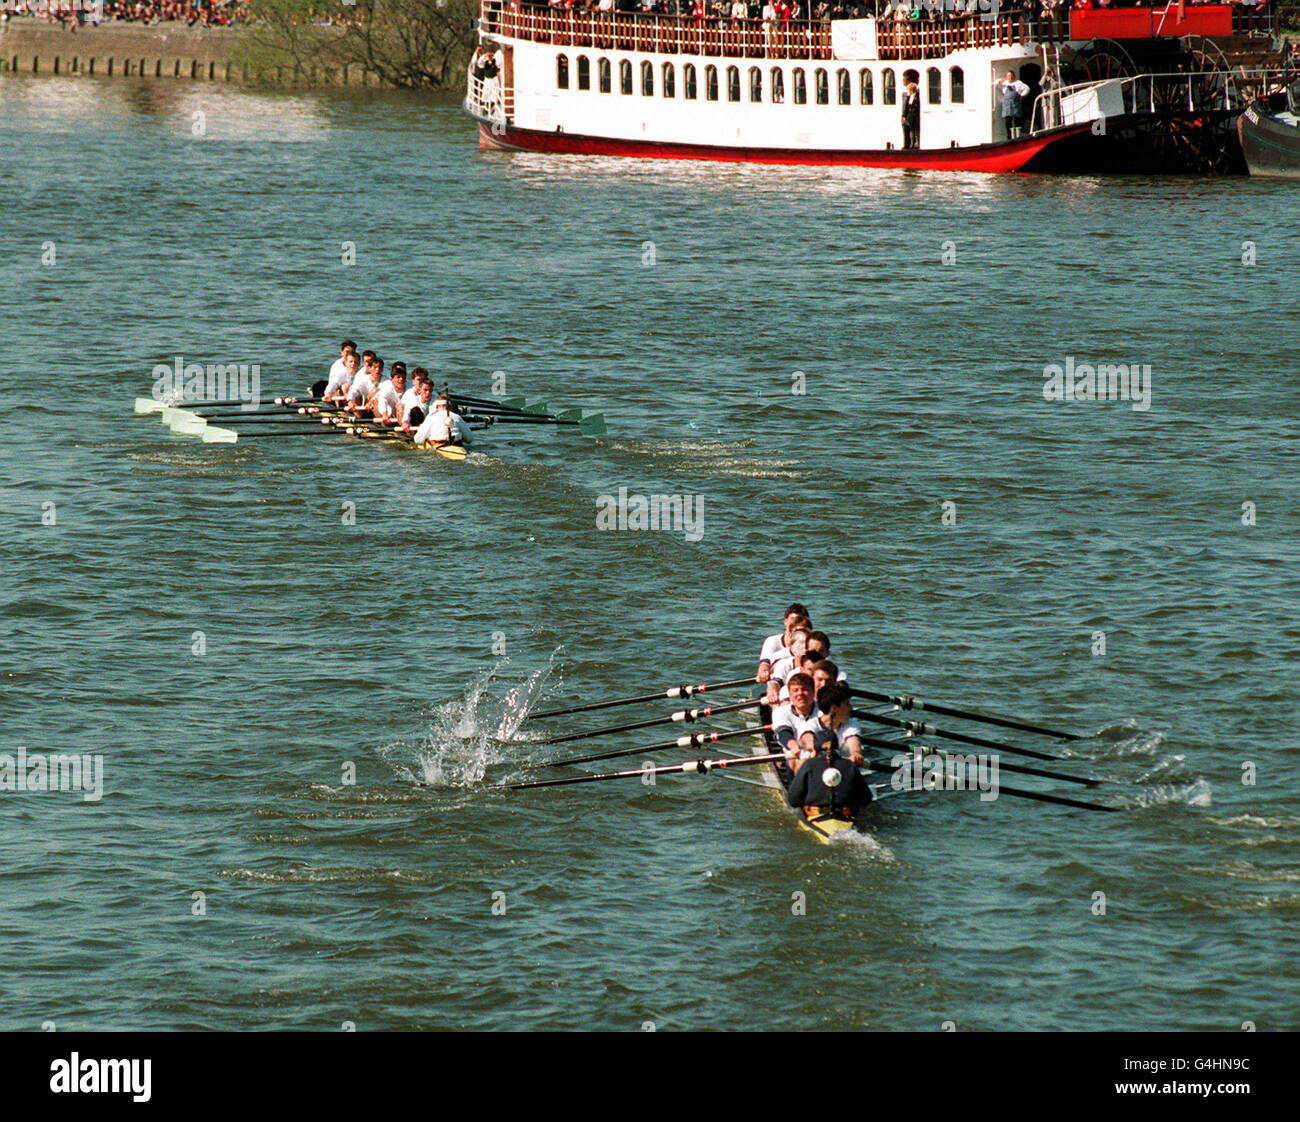 Boat Race 1994 - Stock Image